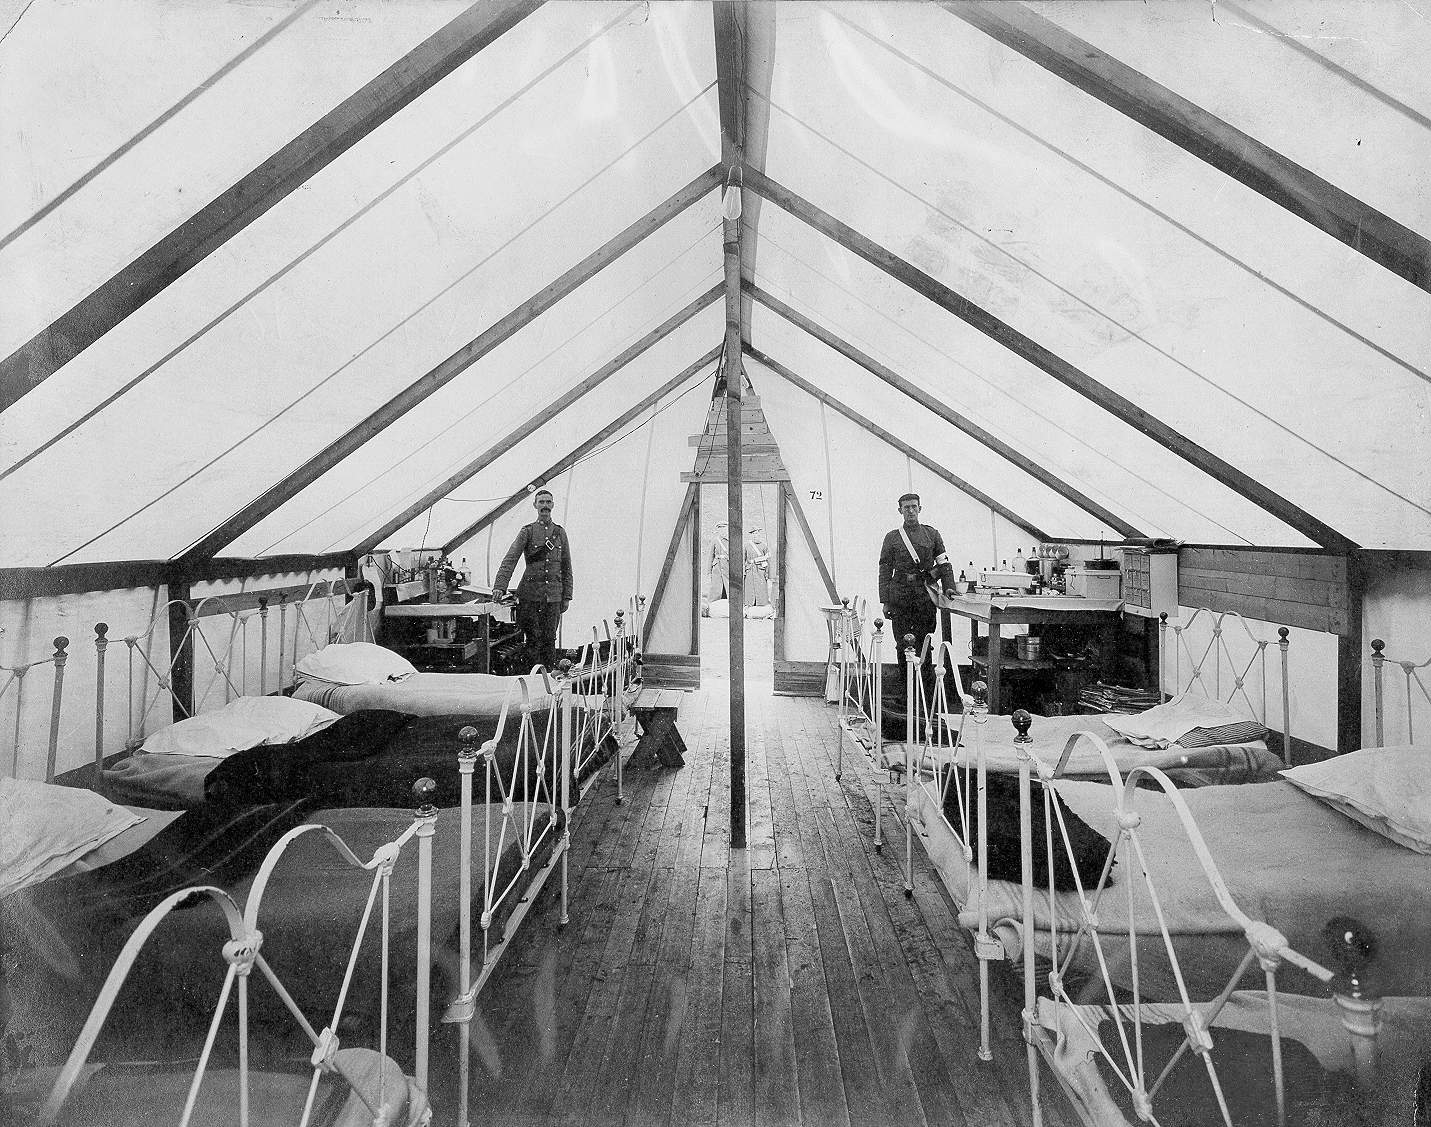 HOSPITAL TENT AT PLEASANTVILLE